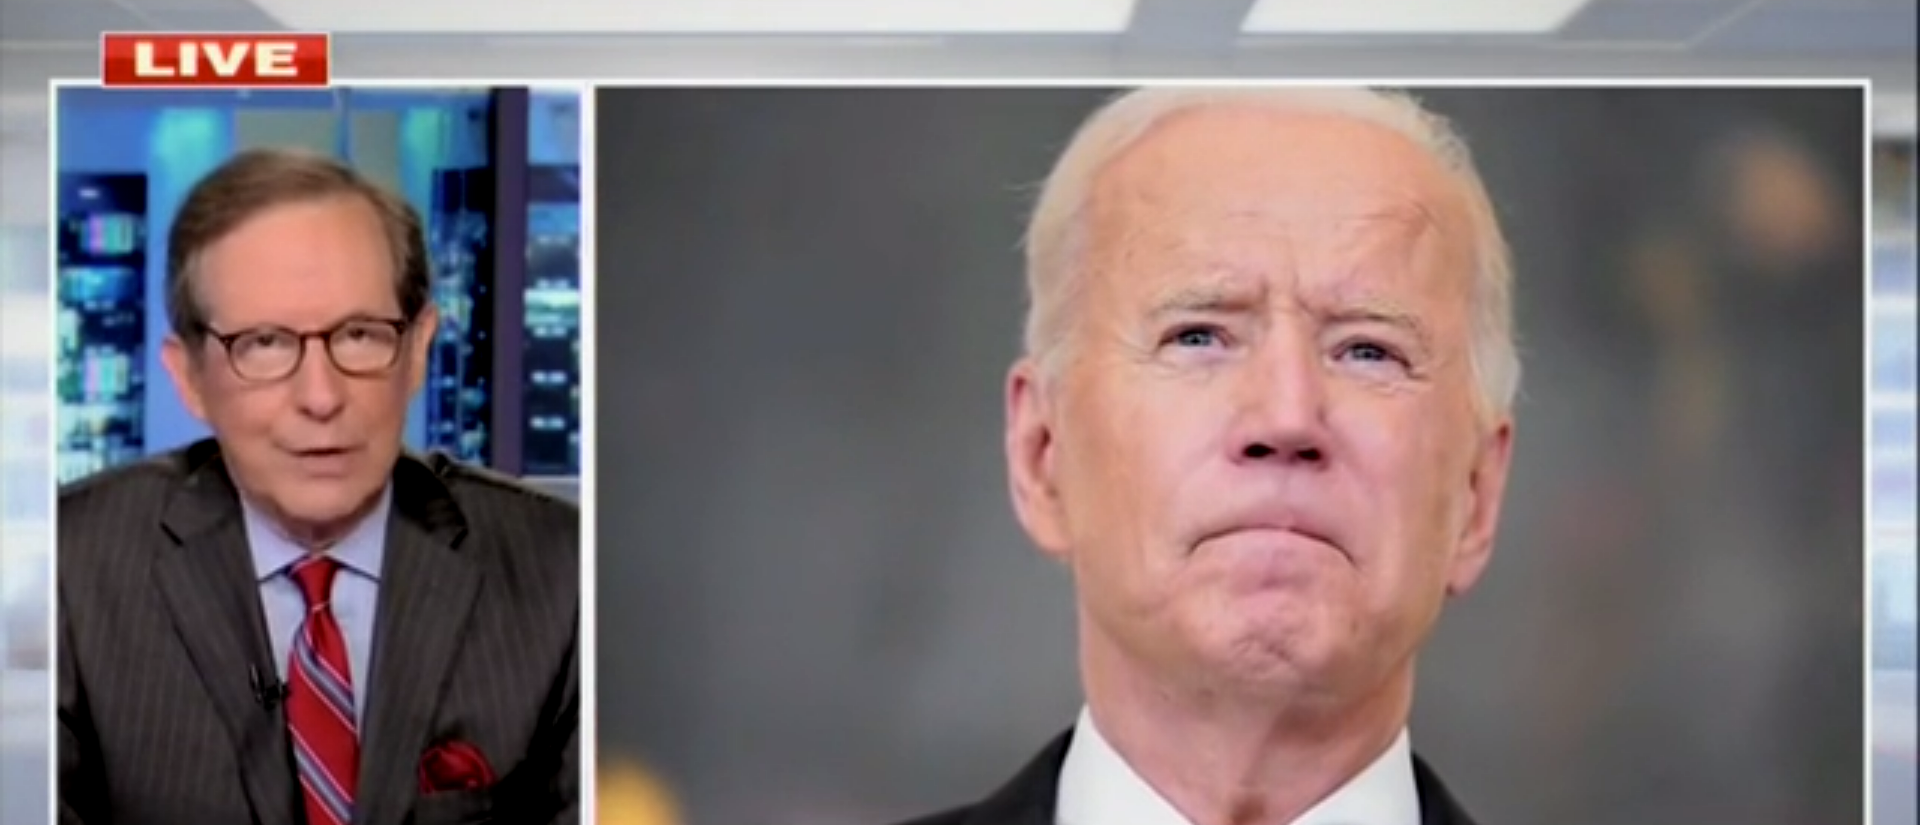 'He Doesn't Have Much Political Cover': Chris Wallace Says Biden's Tanking Poll Numbers Will Hurt His Agenda